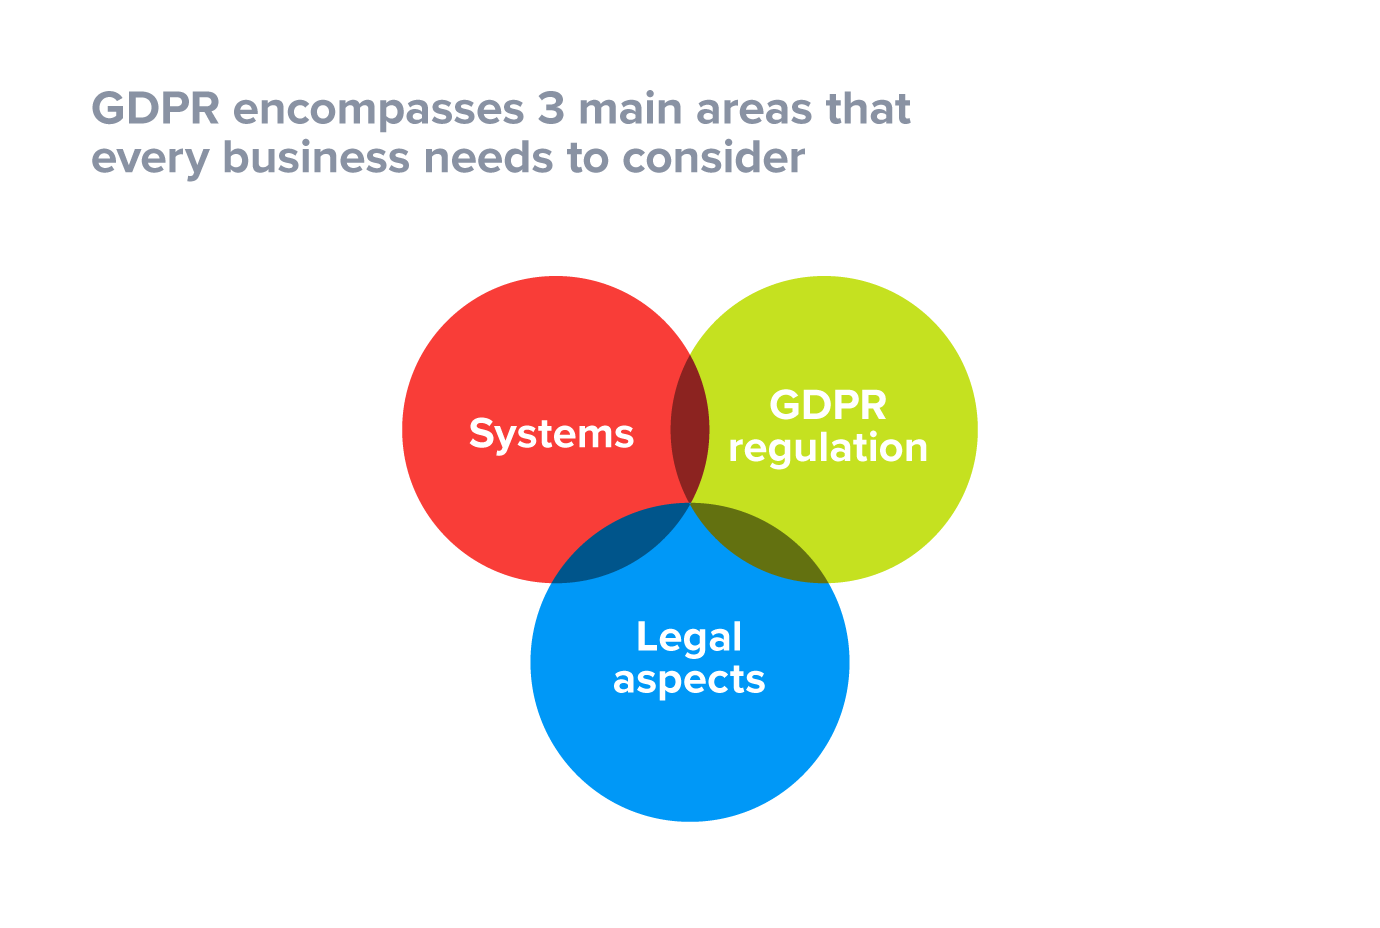 GDPR compliance encompasses 3 main areas of focus: systems, regulation, and legal aspects.